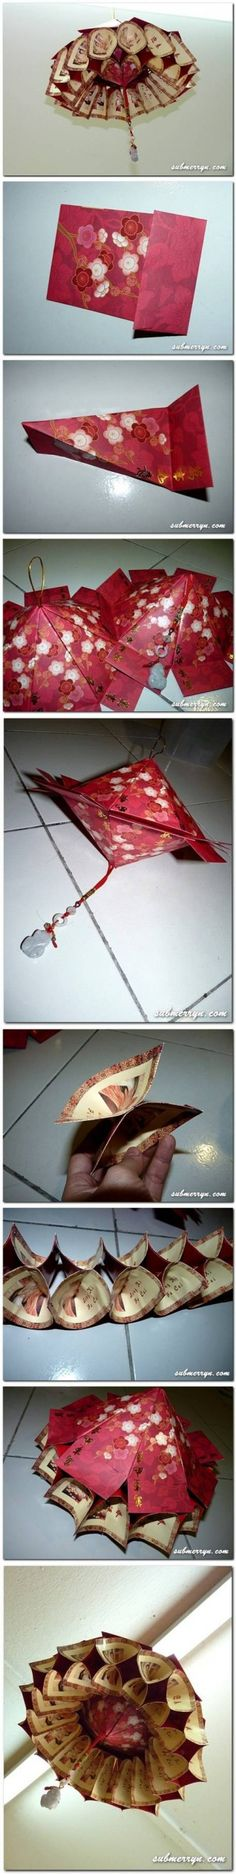 DIY Chinese Lantern DIY Projects